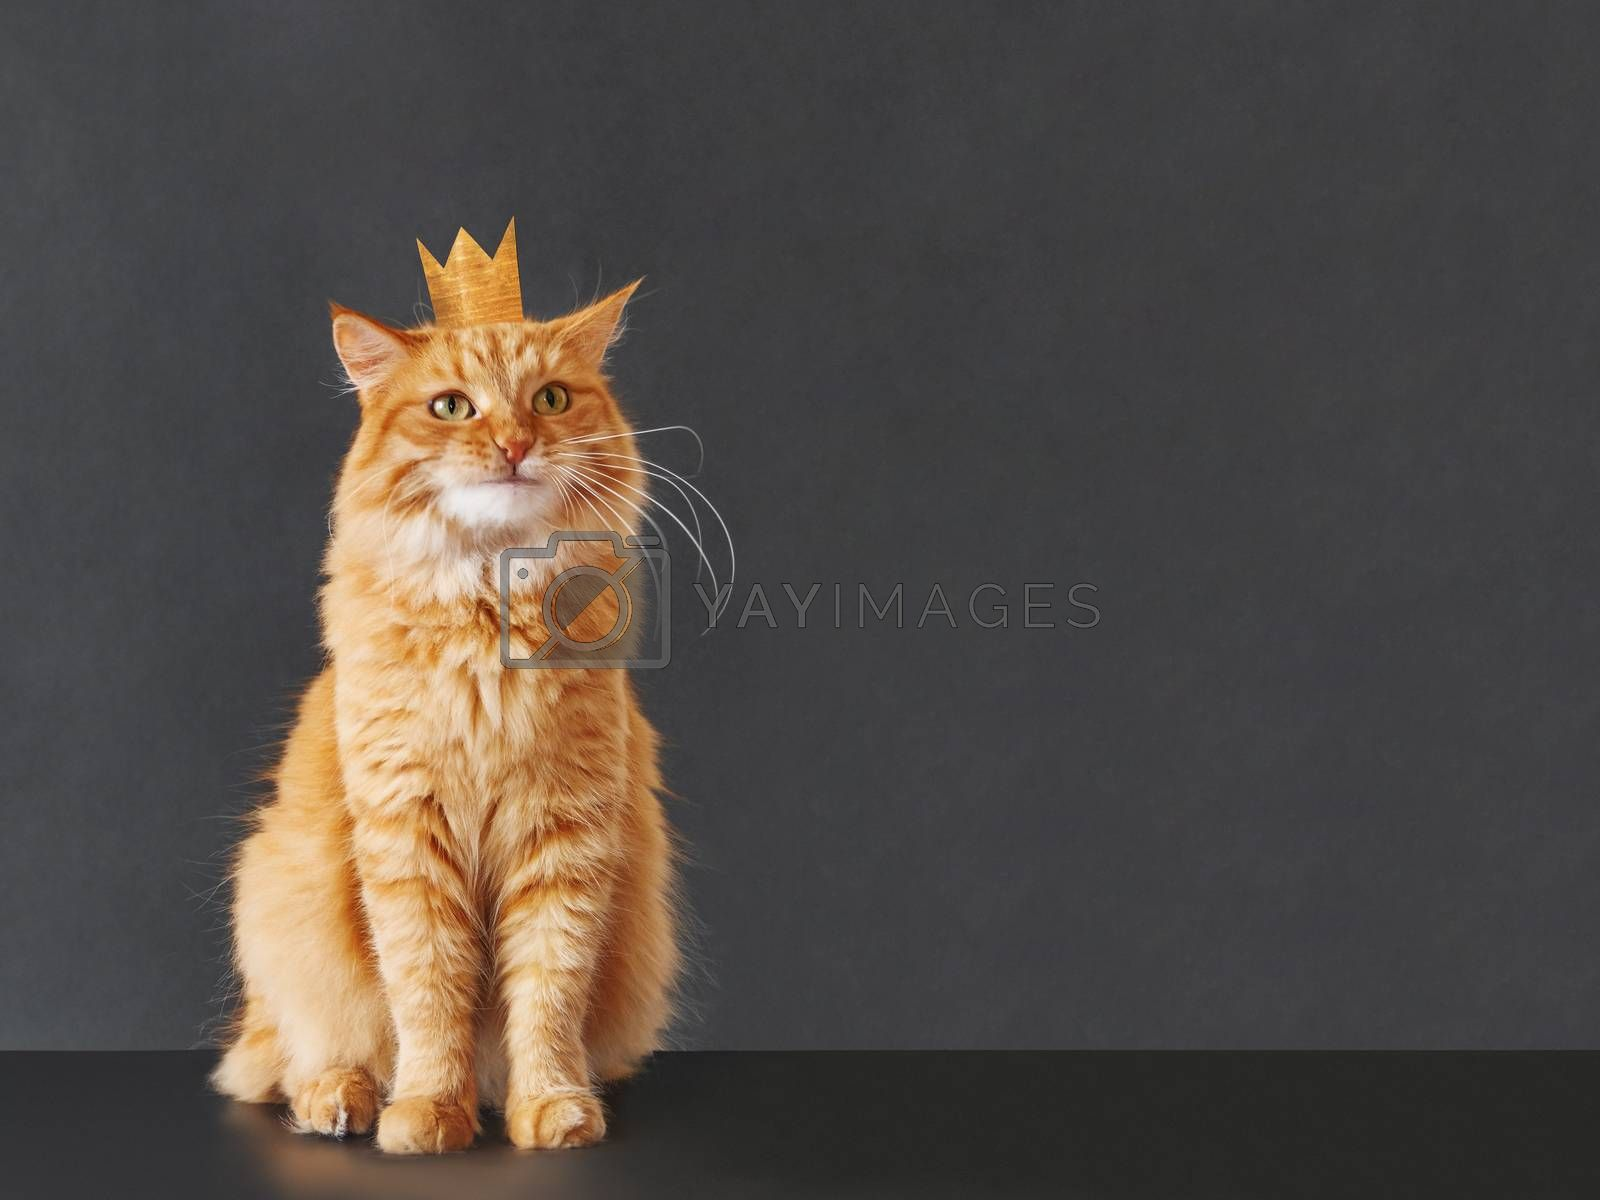 Cute ginger cat with awesome expression on face and golden crown on head posing like lion on black background with copy space. Symbol of your inner self.